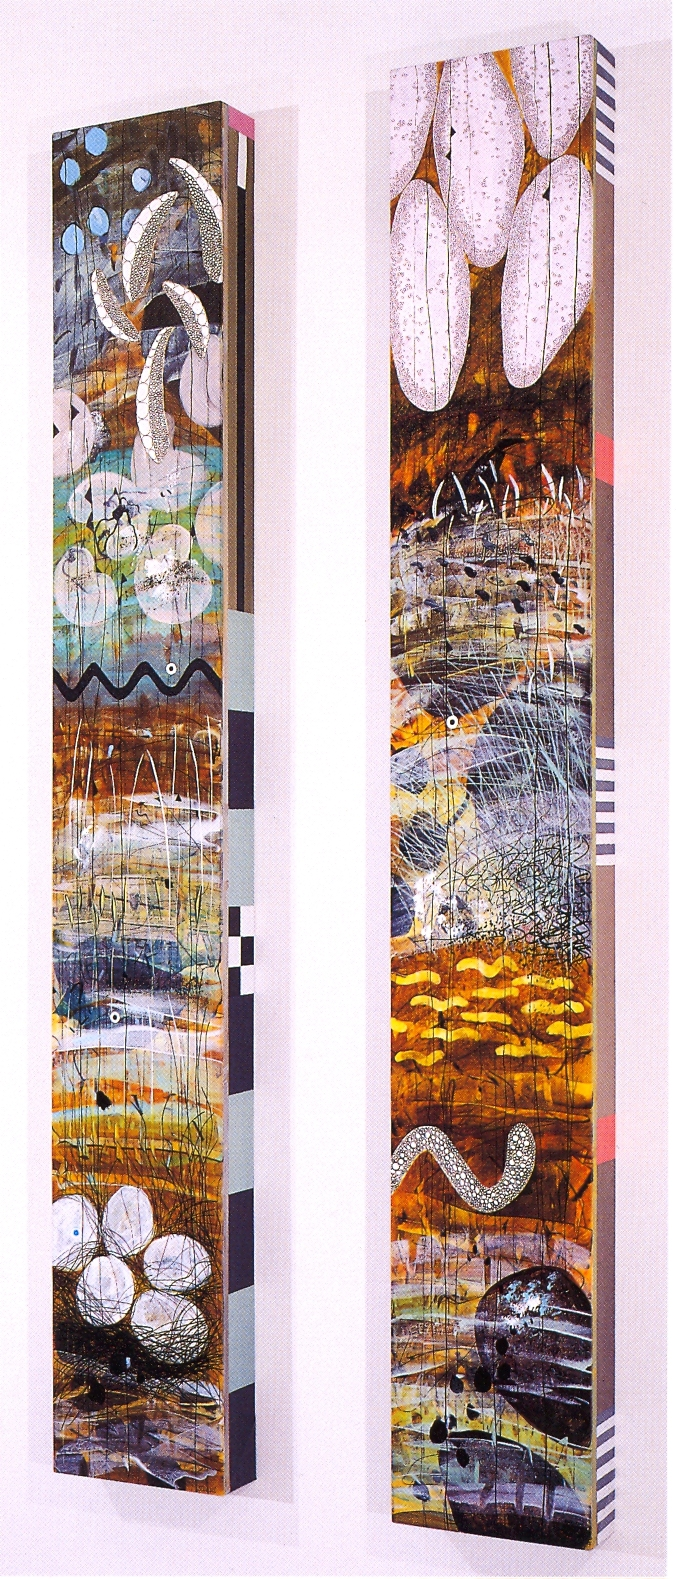 """Betsy Stewart,   Pond Totem #25   (Left),   Pond Totem #20   (Right), 2002, Acrylic and Sumi Ink on canvas, 70"""" x 10"""" x 3 1/2"""" (Each Panel)"""